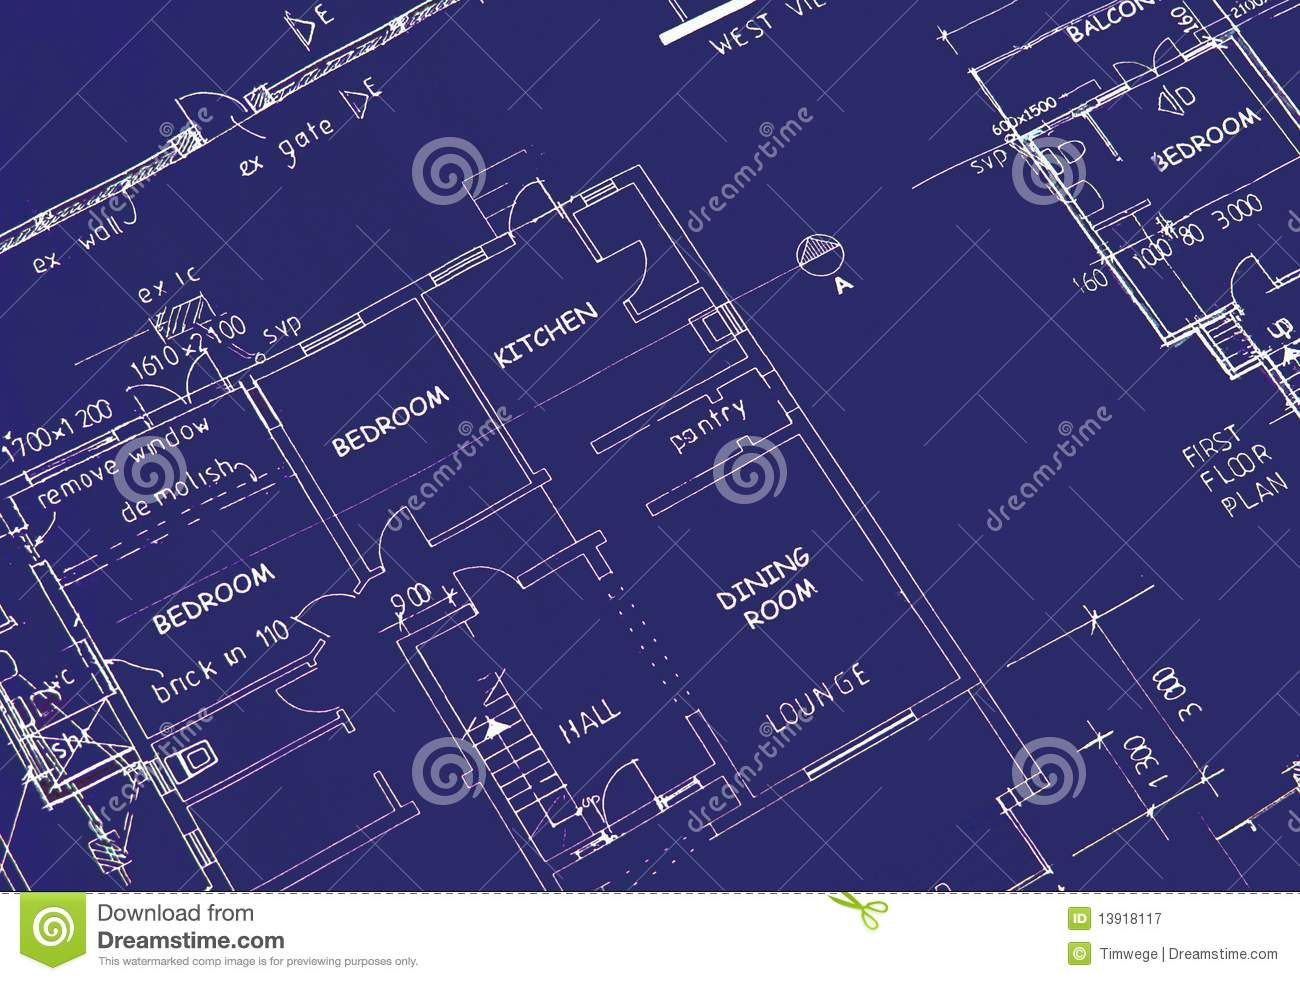 Blueprint of building plans stock image image of dining for Blueprint of my house online